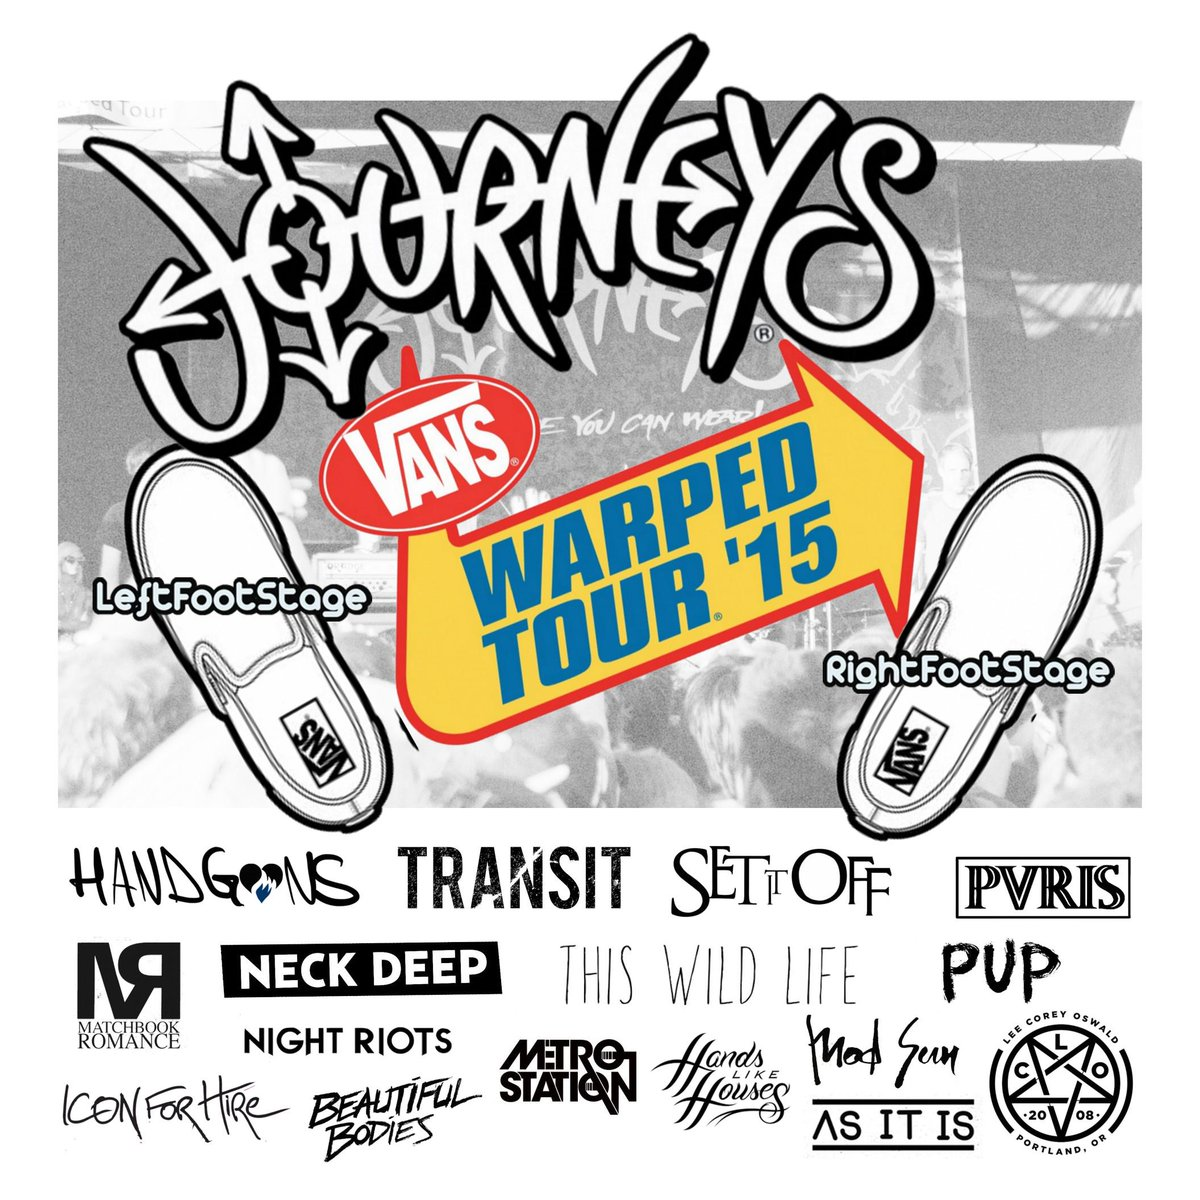 UPDATED lineup for  @journeys Stage @VansWarpedTour   STAGE IS STACKED THIS YEAR!!   #leftfootstage #rightfootstage http://t.co/KxaZPL2f2p